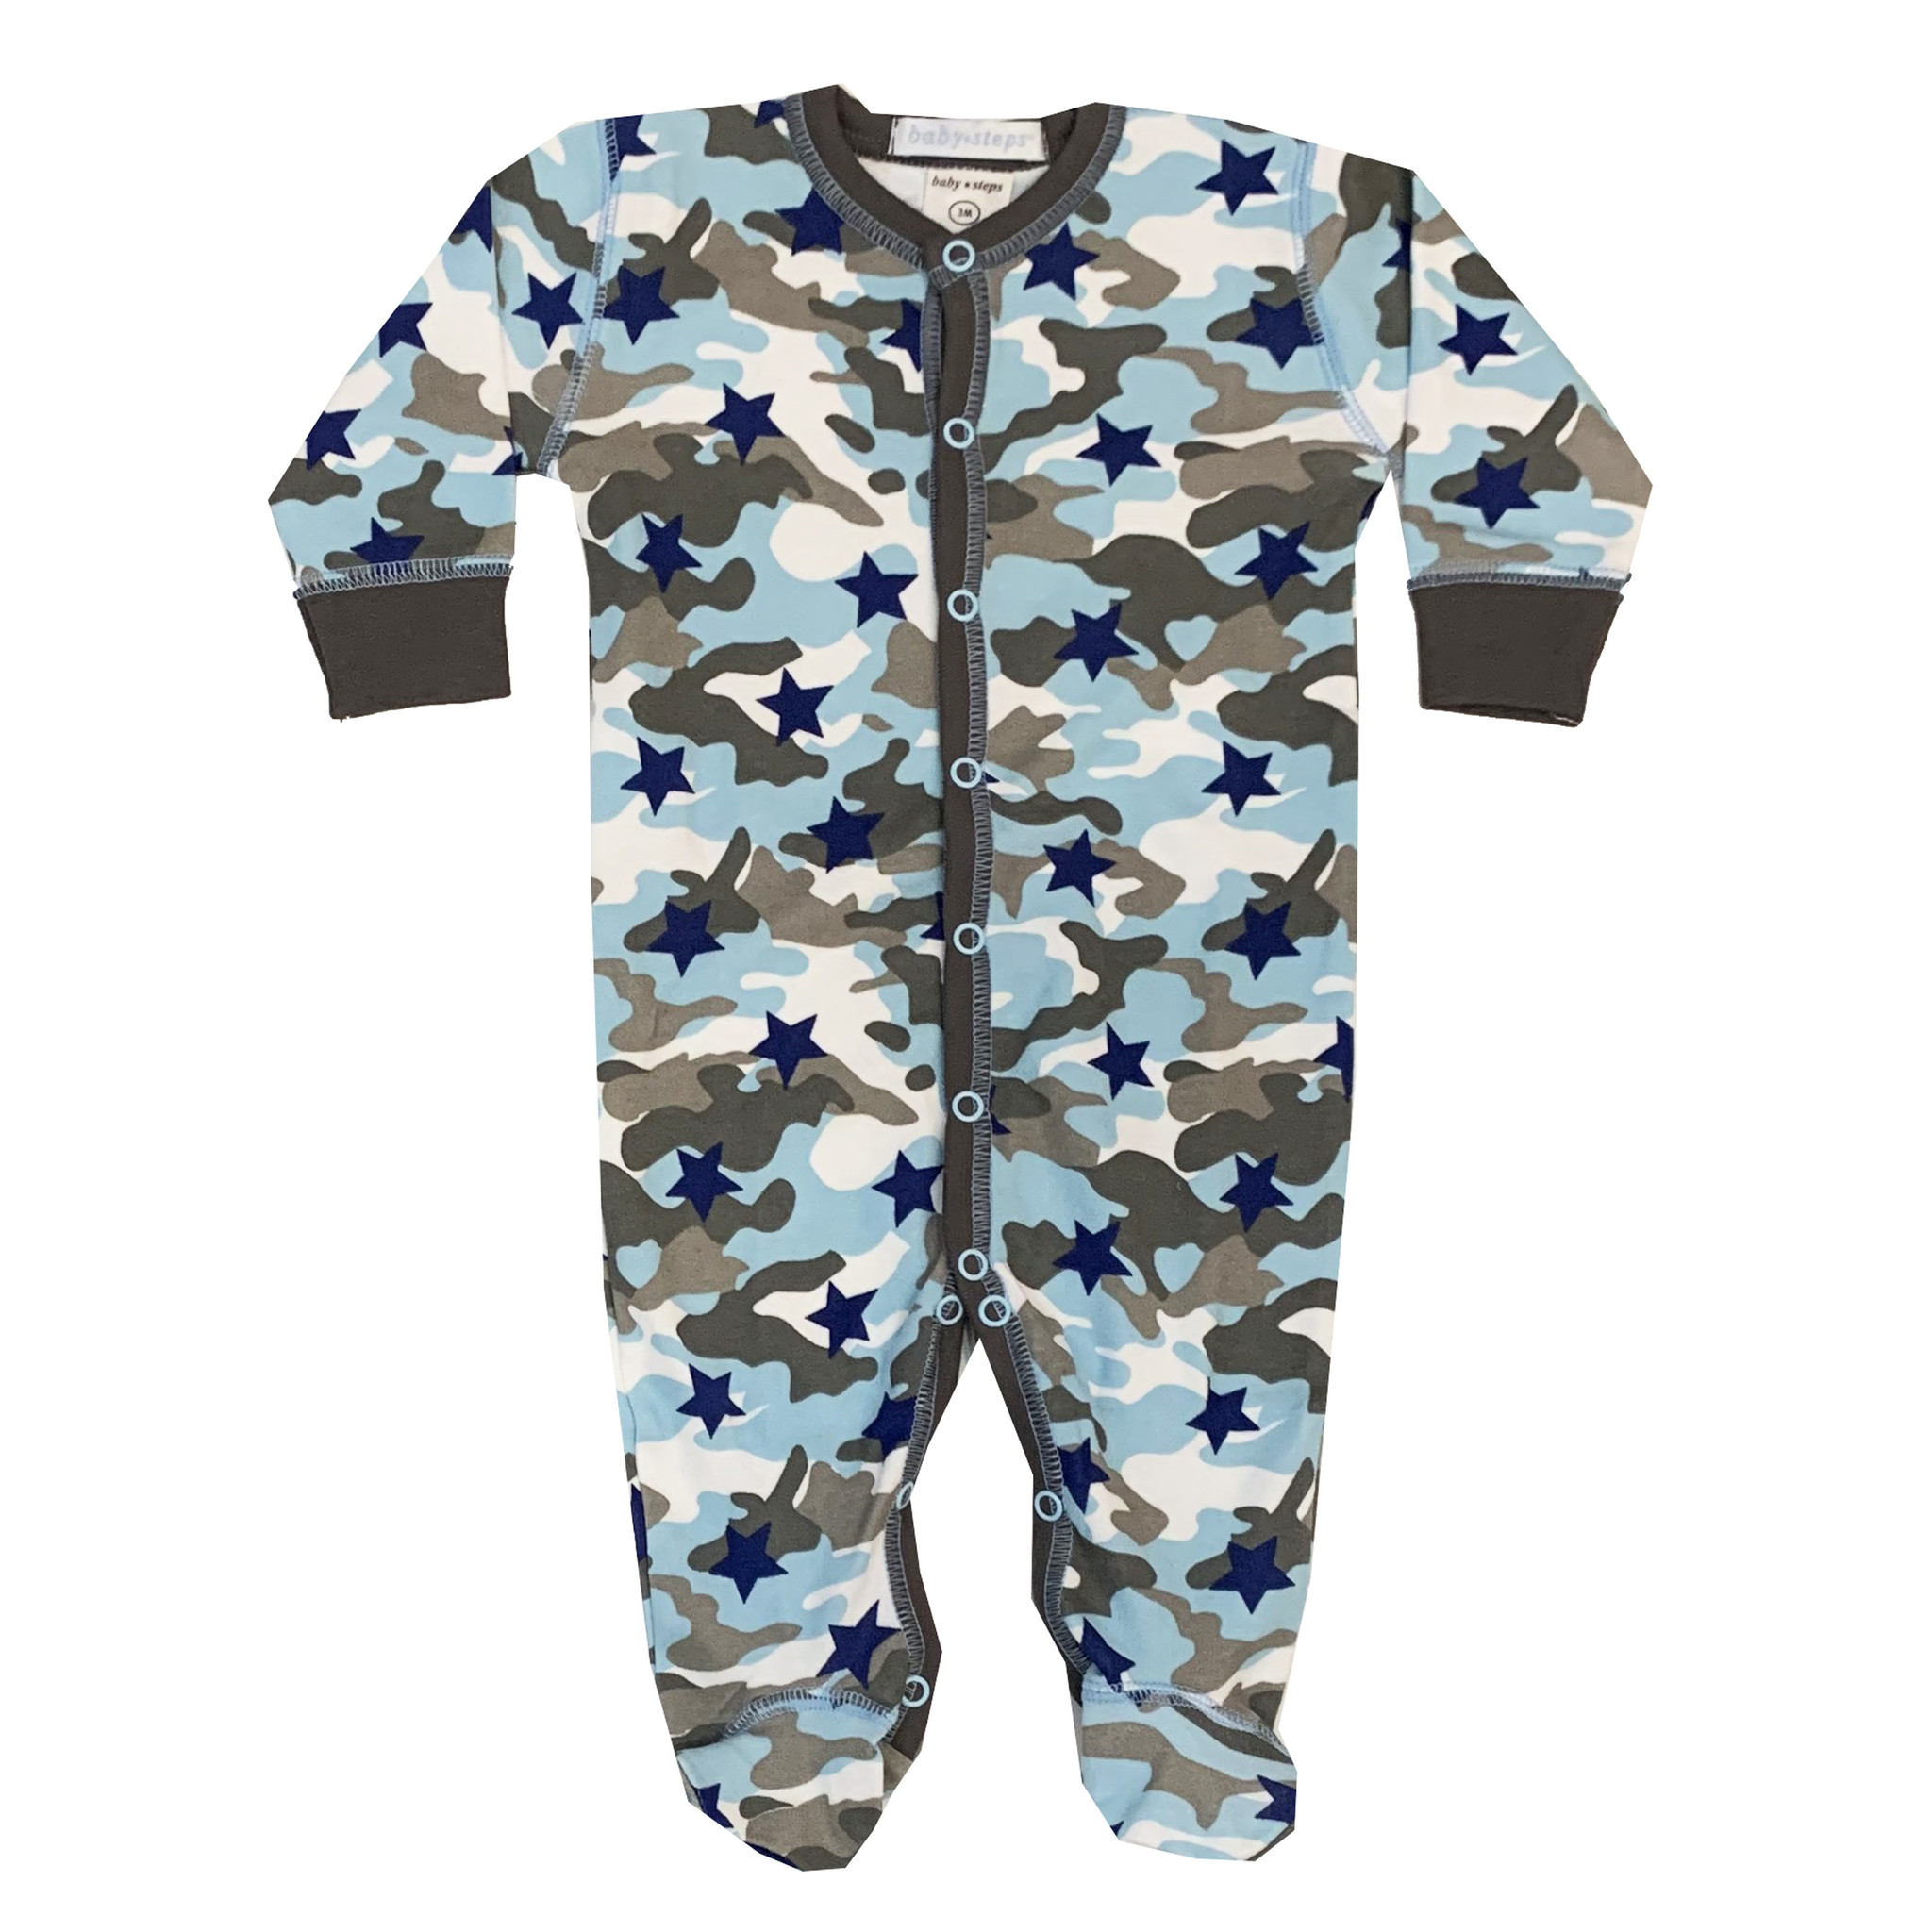 Baby Steps Blue Camo Star Footie